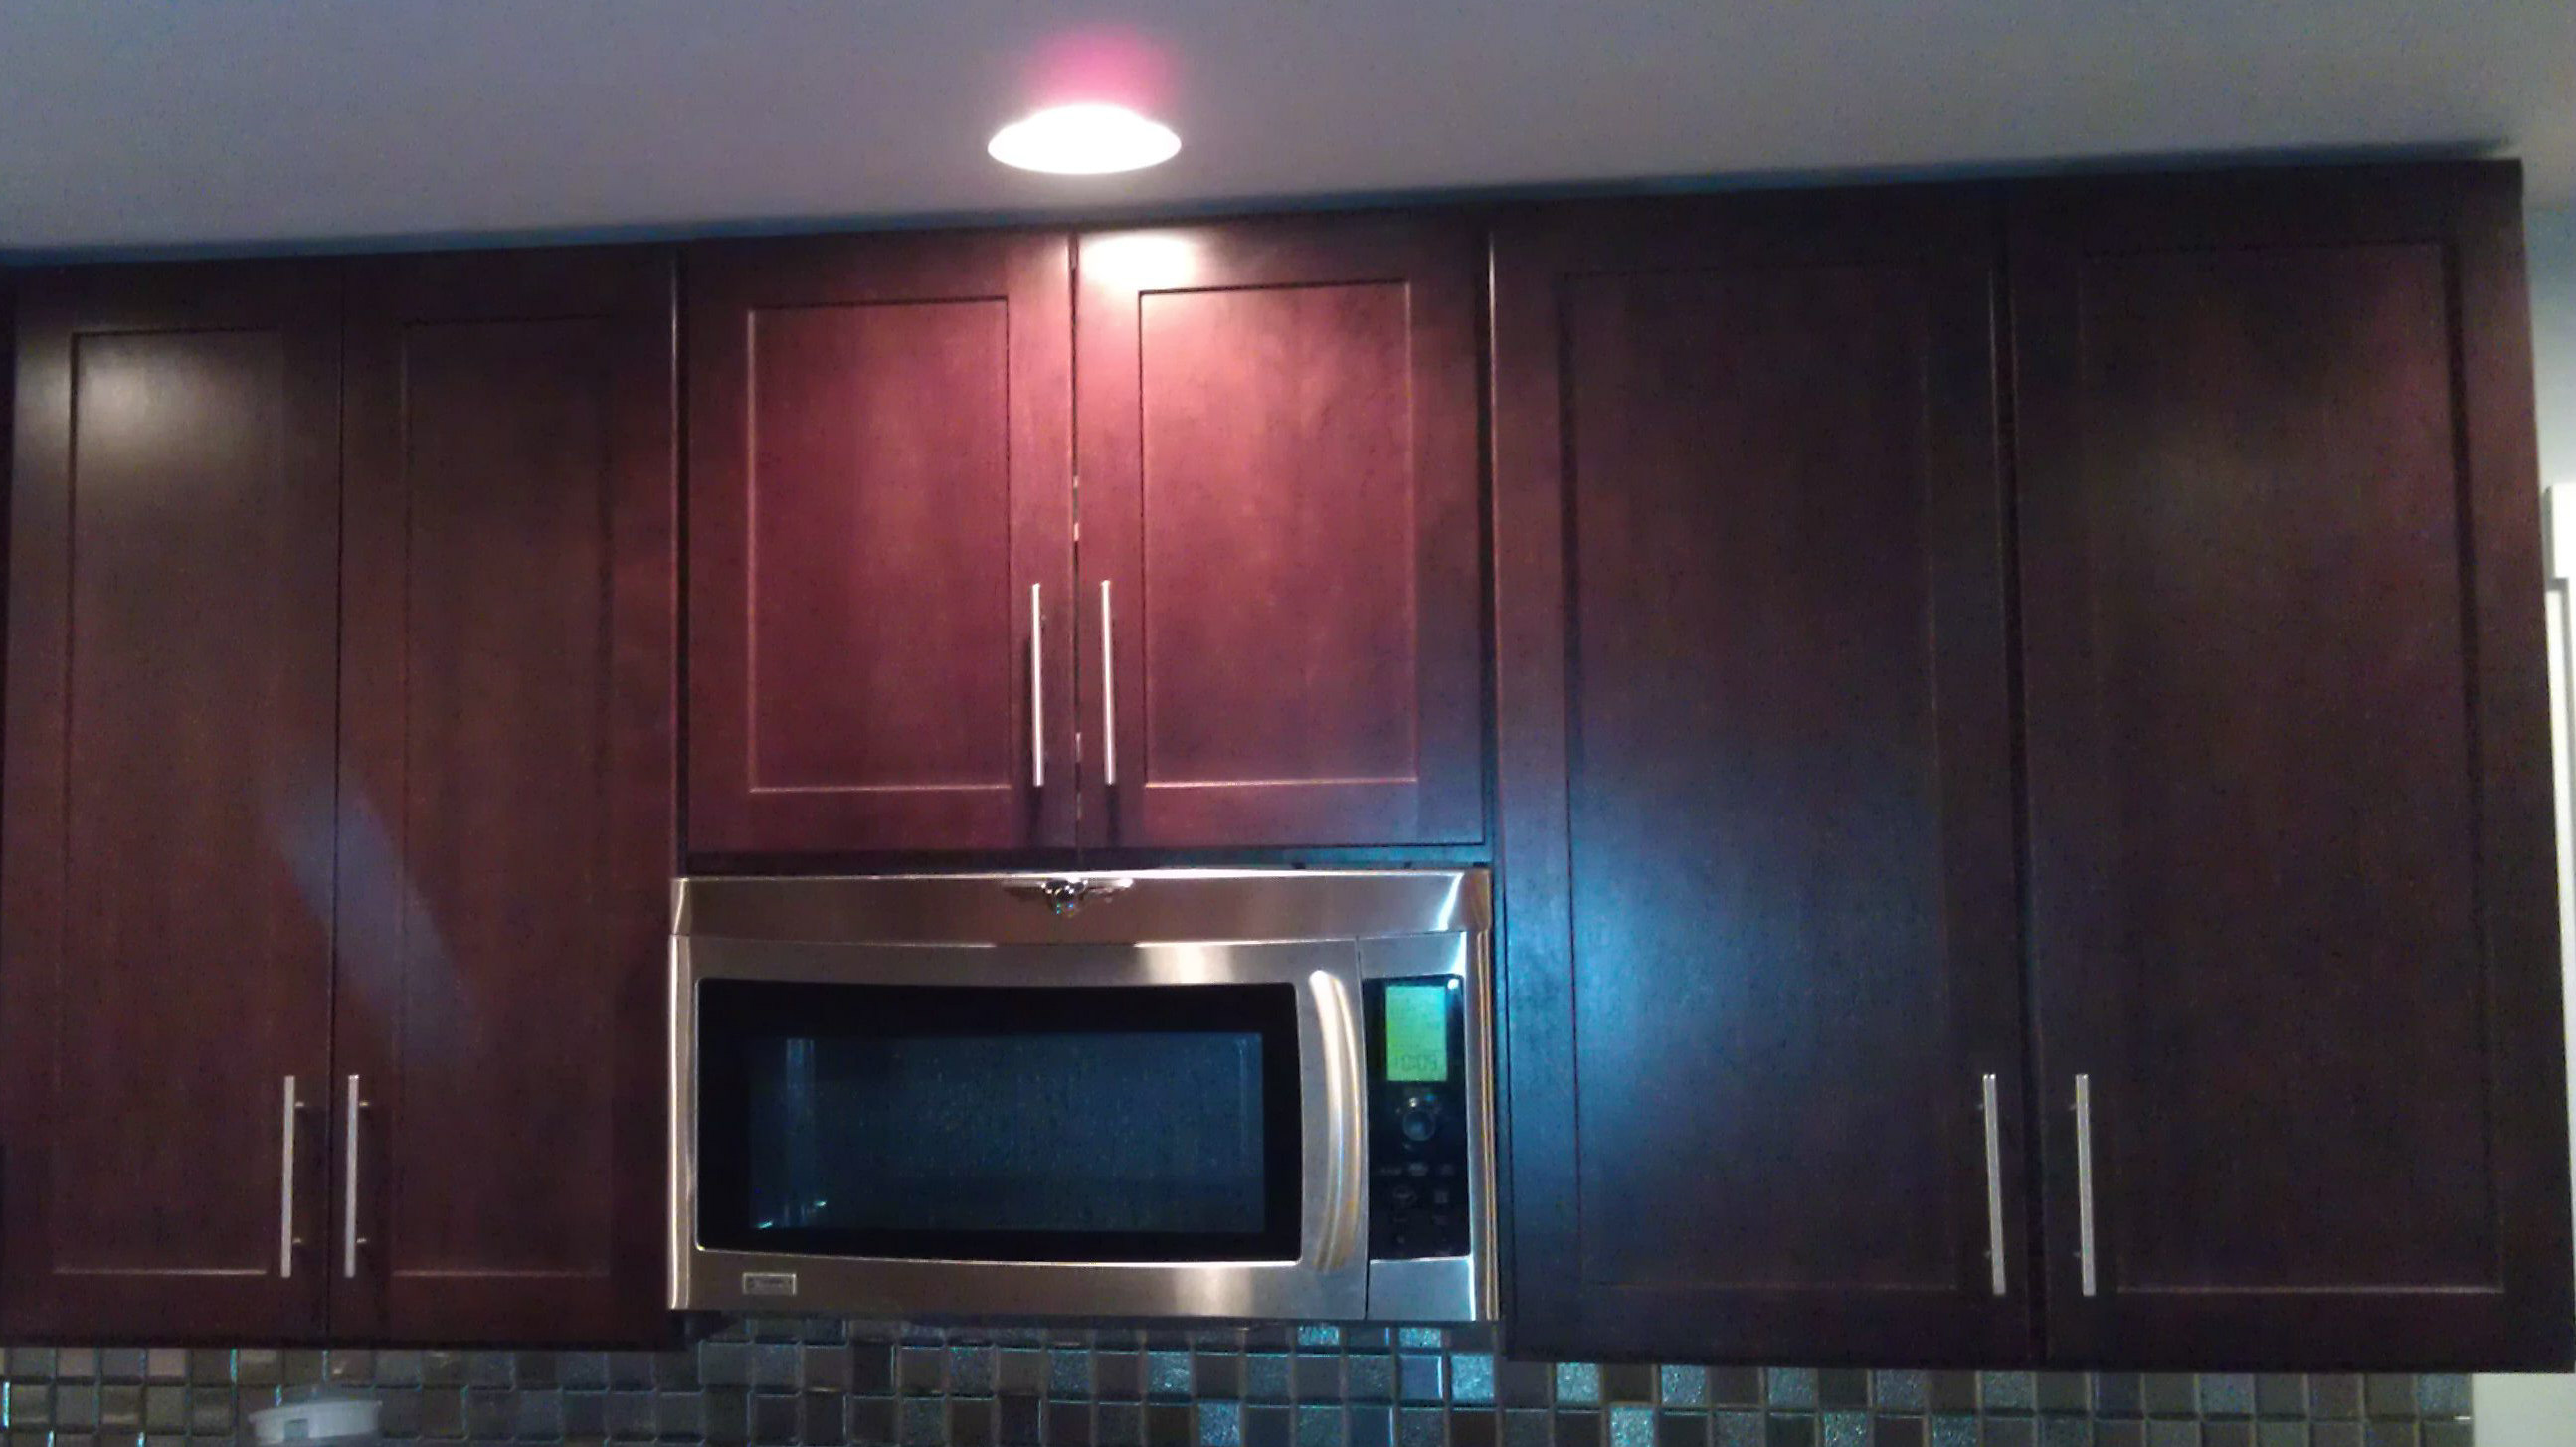 Kitchen Cabinets: Crown Molding Or Flush With Ceiling? Cabinets